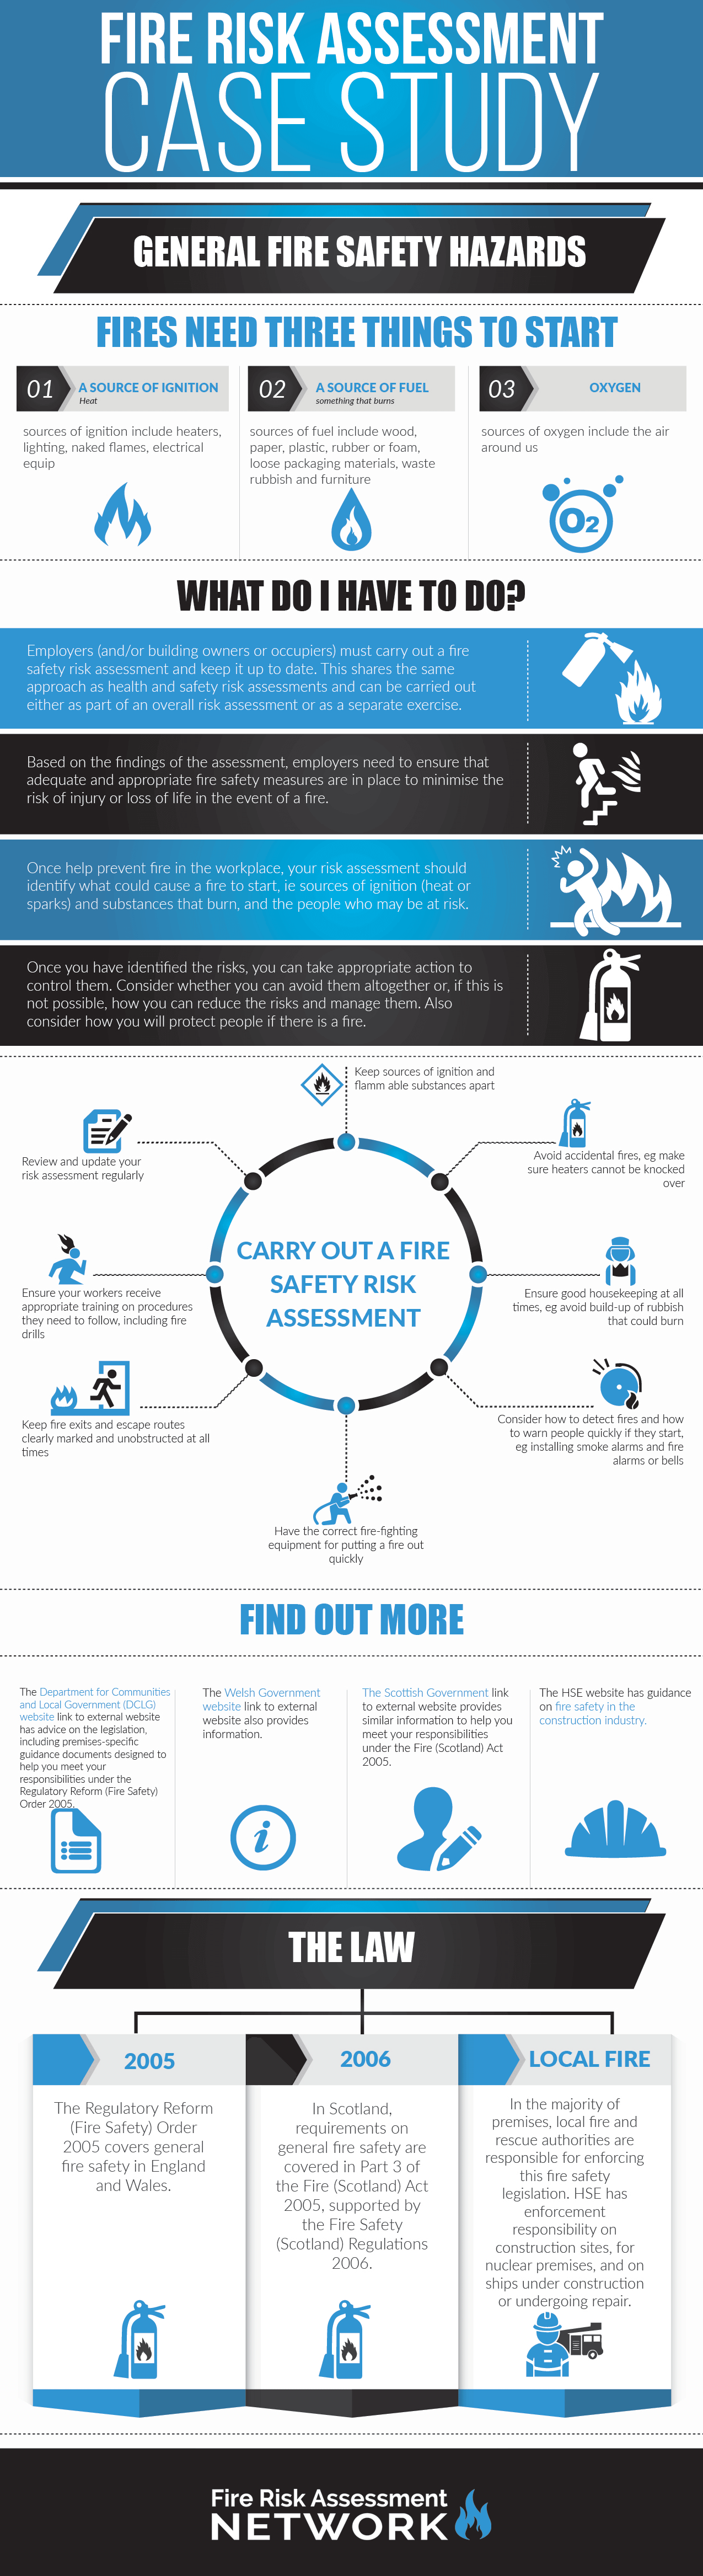 Fire Risk Assessment Case Study Infographic